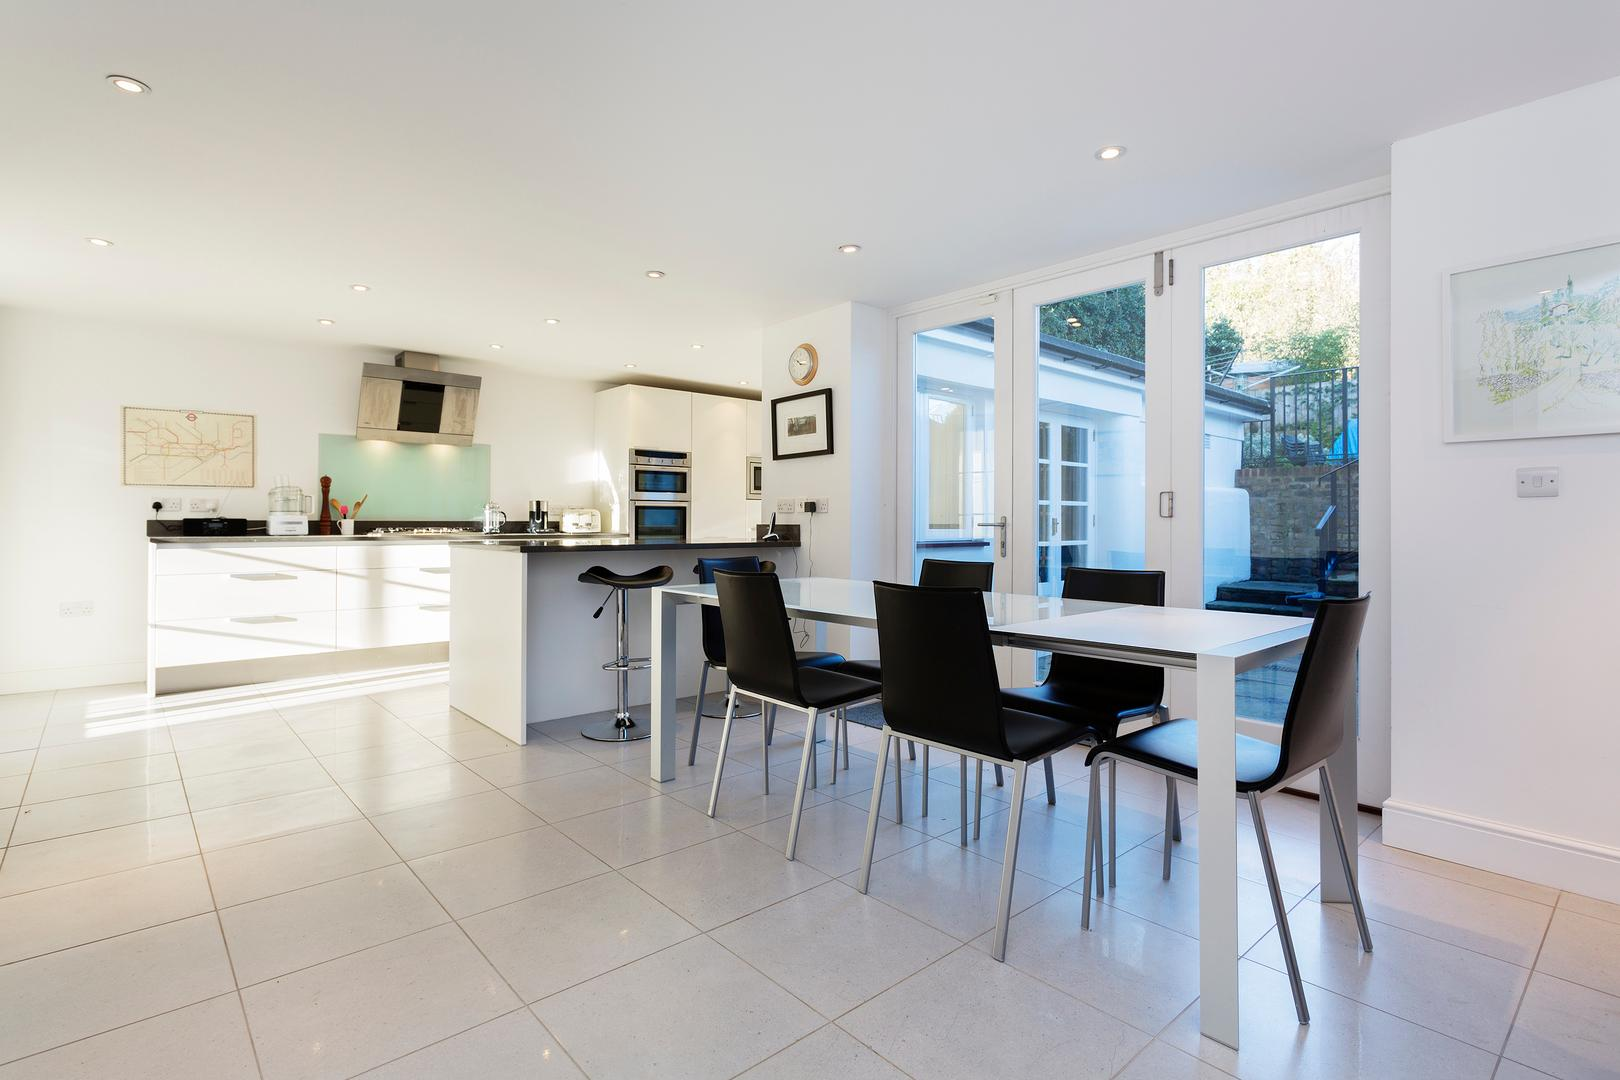 Property Image 2 - Bright & Classic Hampstead Home by Keat's House